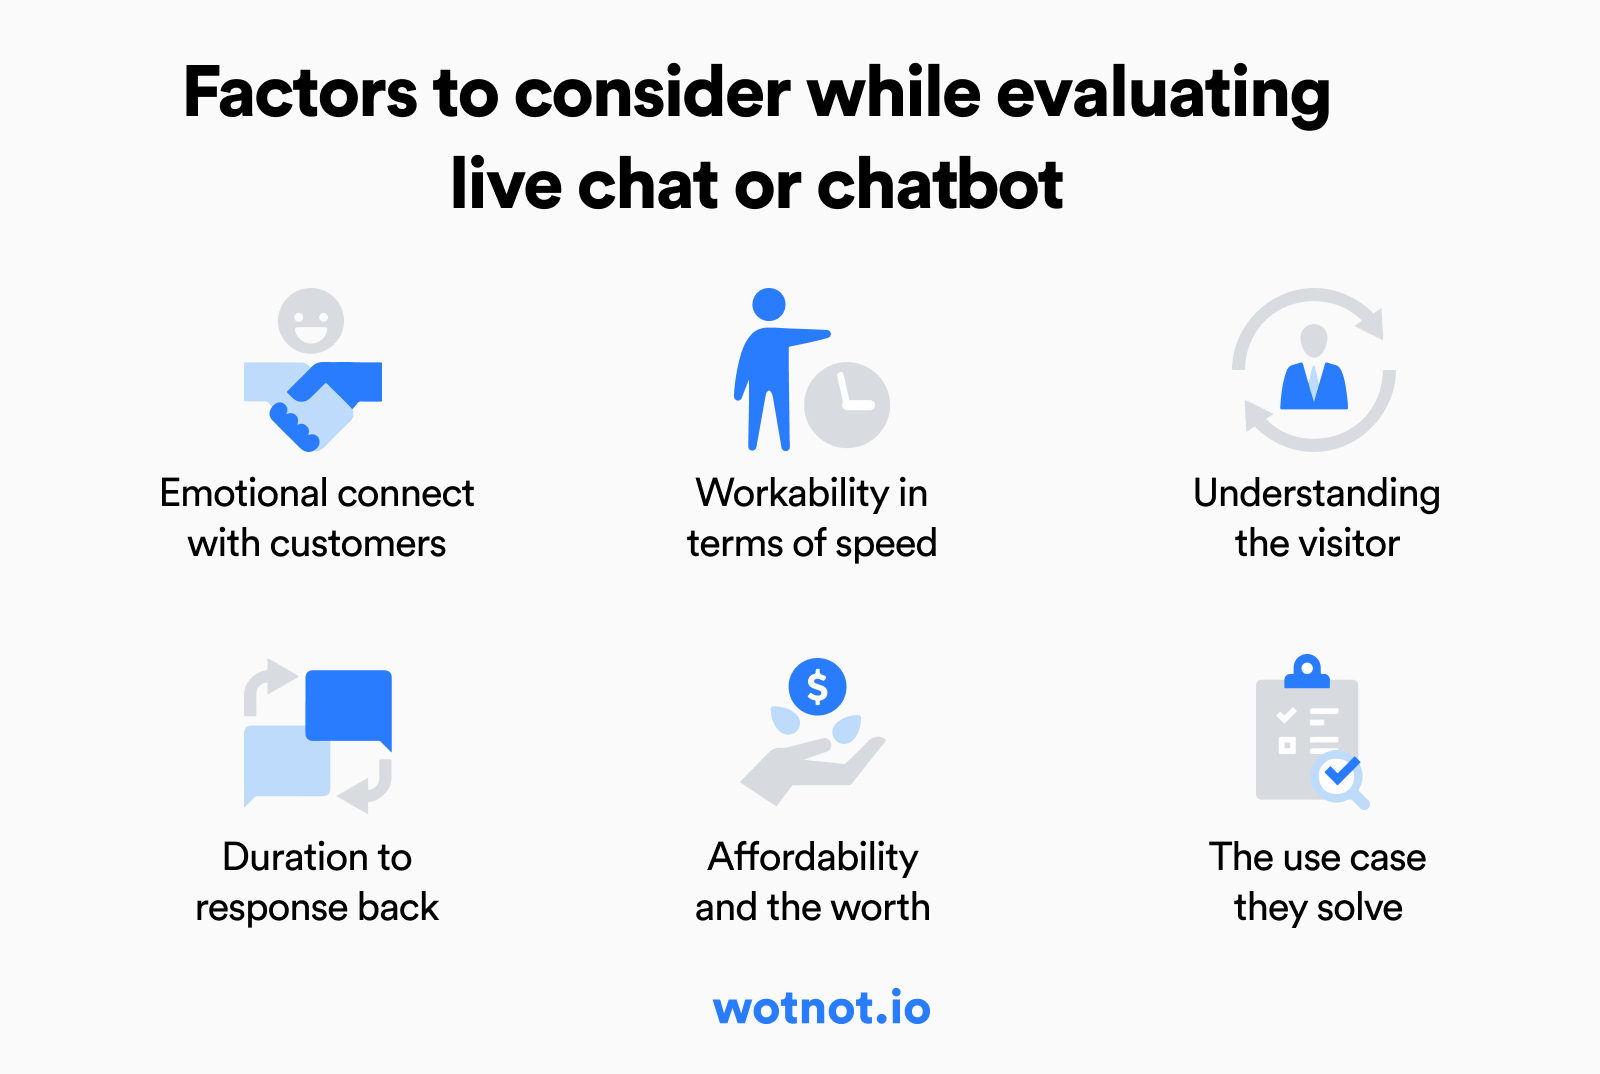 Factors to consider while evaluating live chat or chatbot